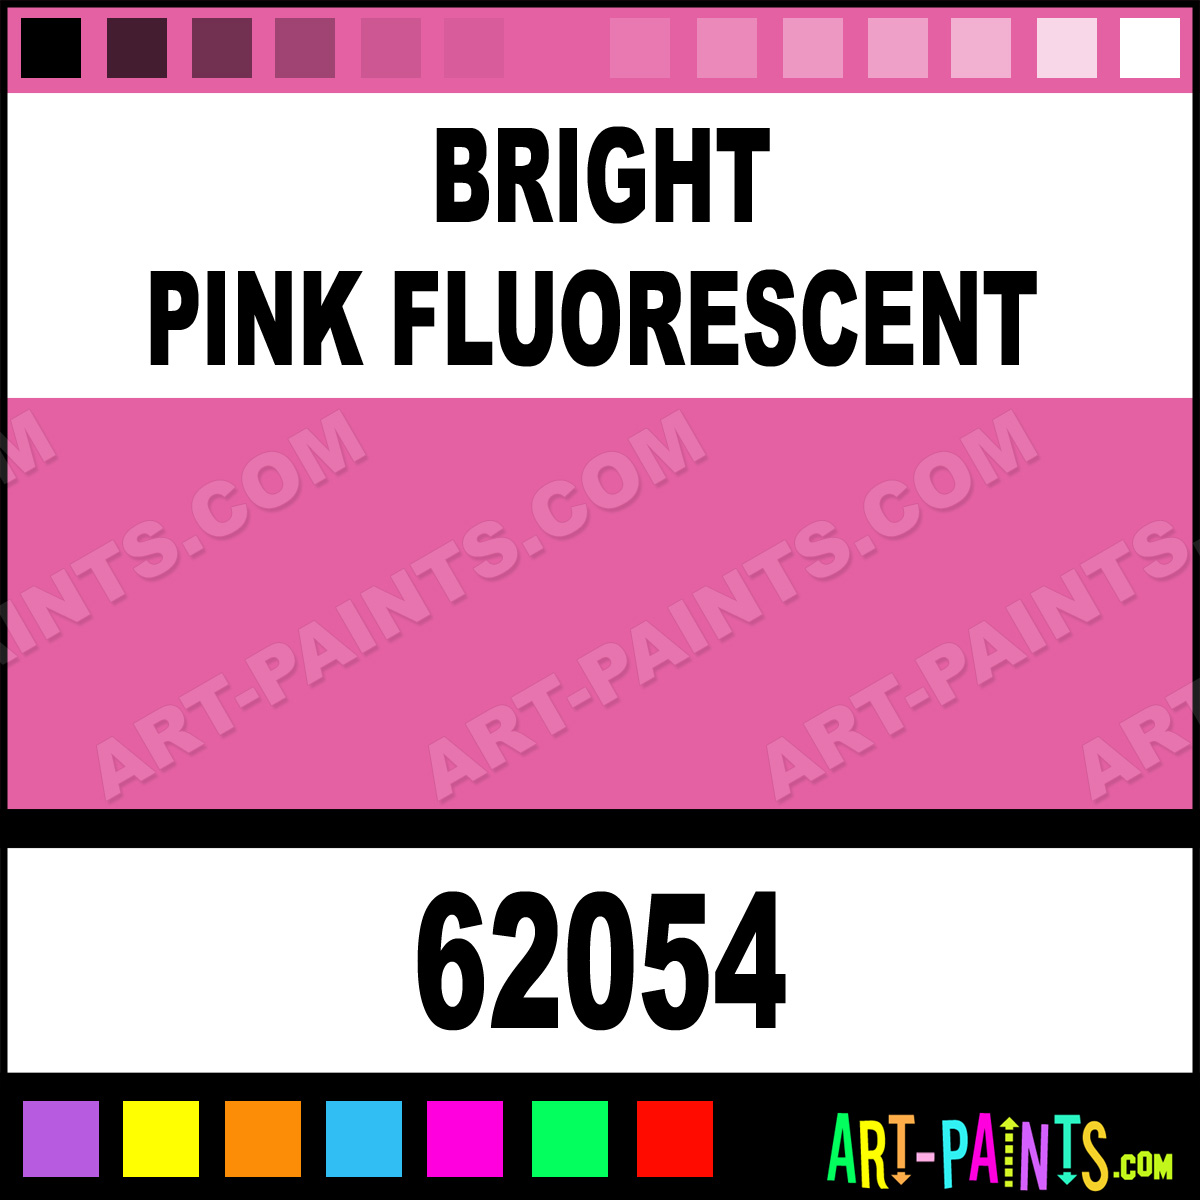 Bright Pink Paint Samples Kitchen Towels: Bright Pink Fluorescent Pro-Color Airbrush Spray Paints